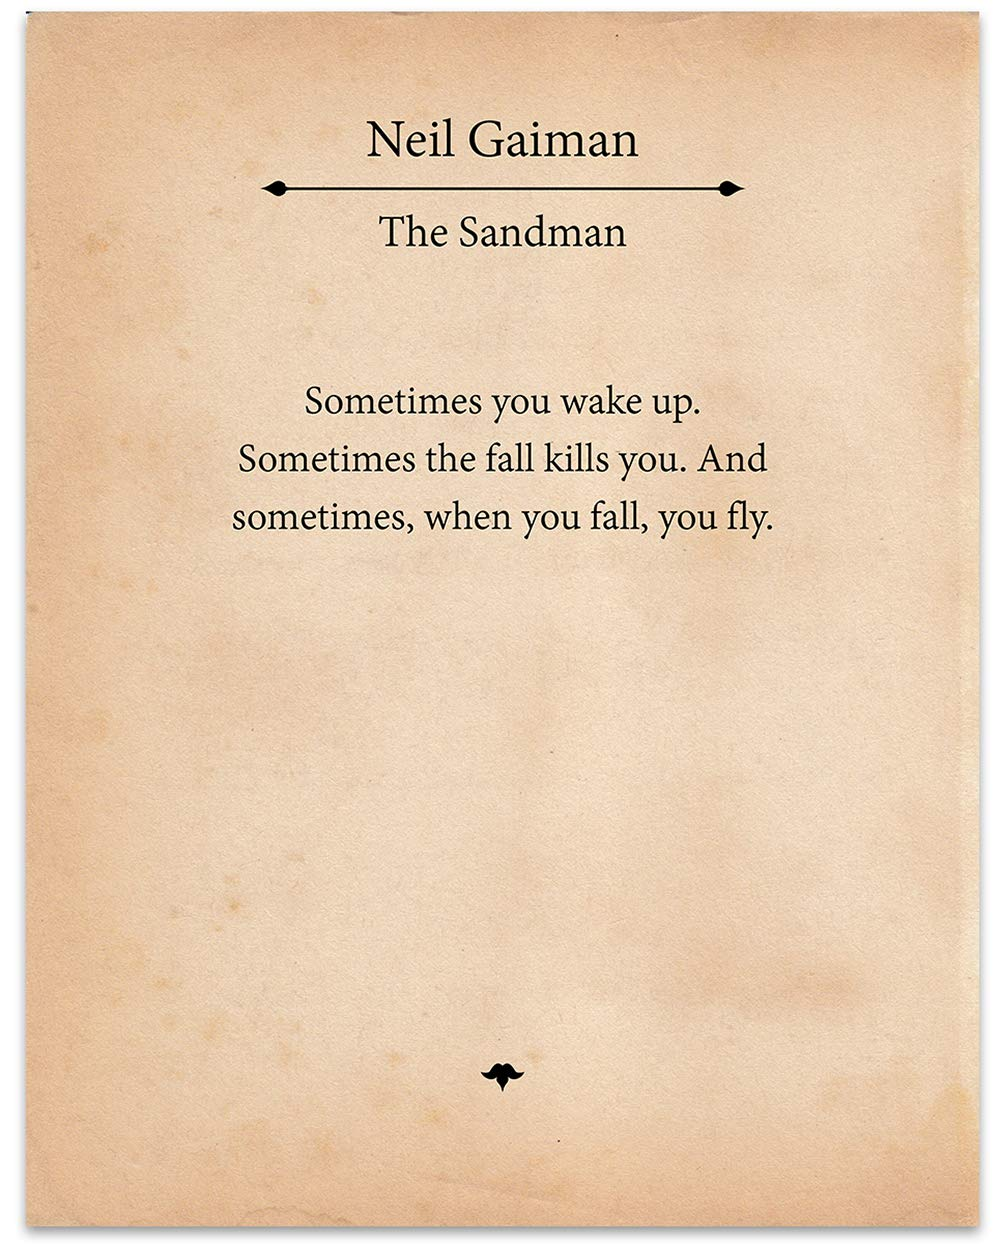 The Sandman - Neil Gaiman - 11x14 Unframed Typography Book Page Print - Great Gift for Book Lovers and Bookworms